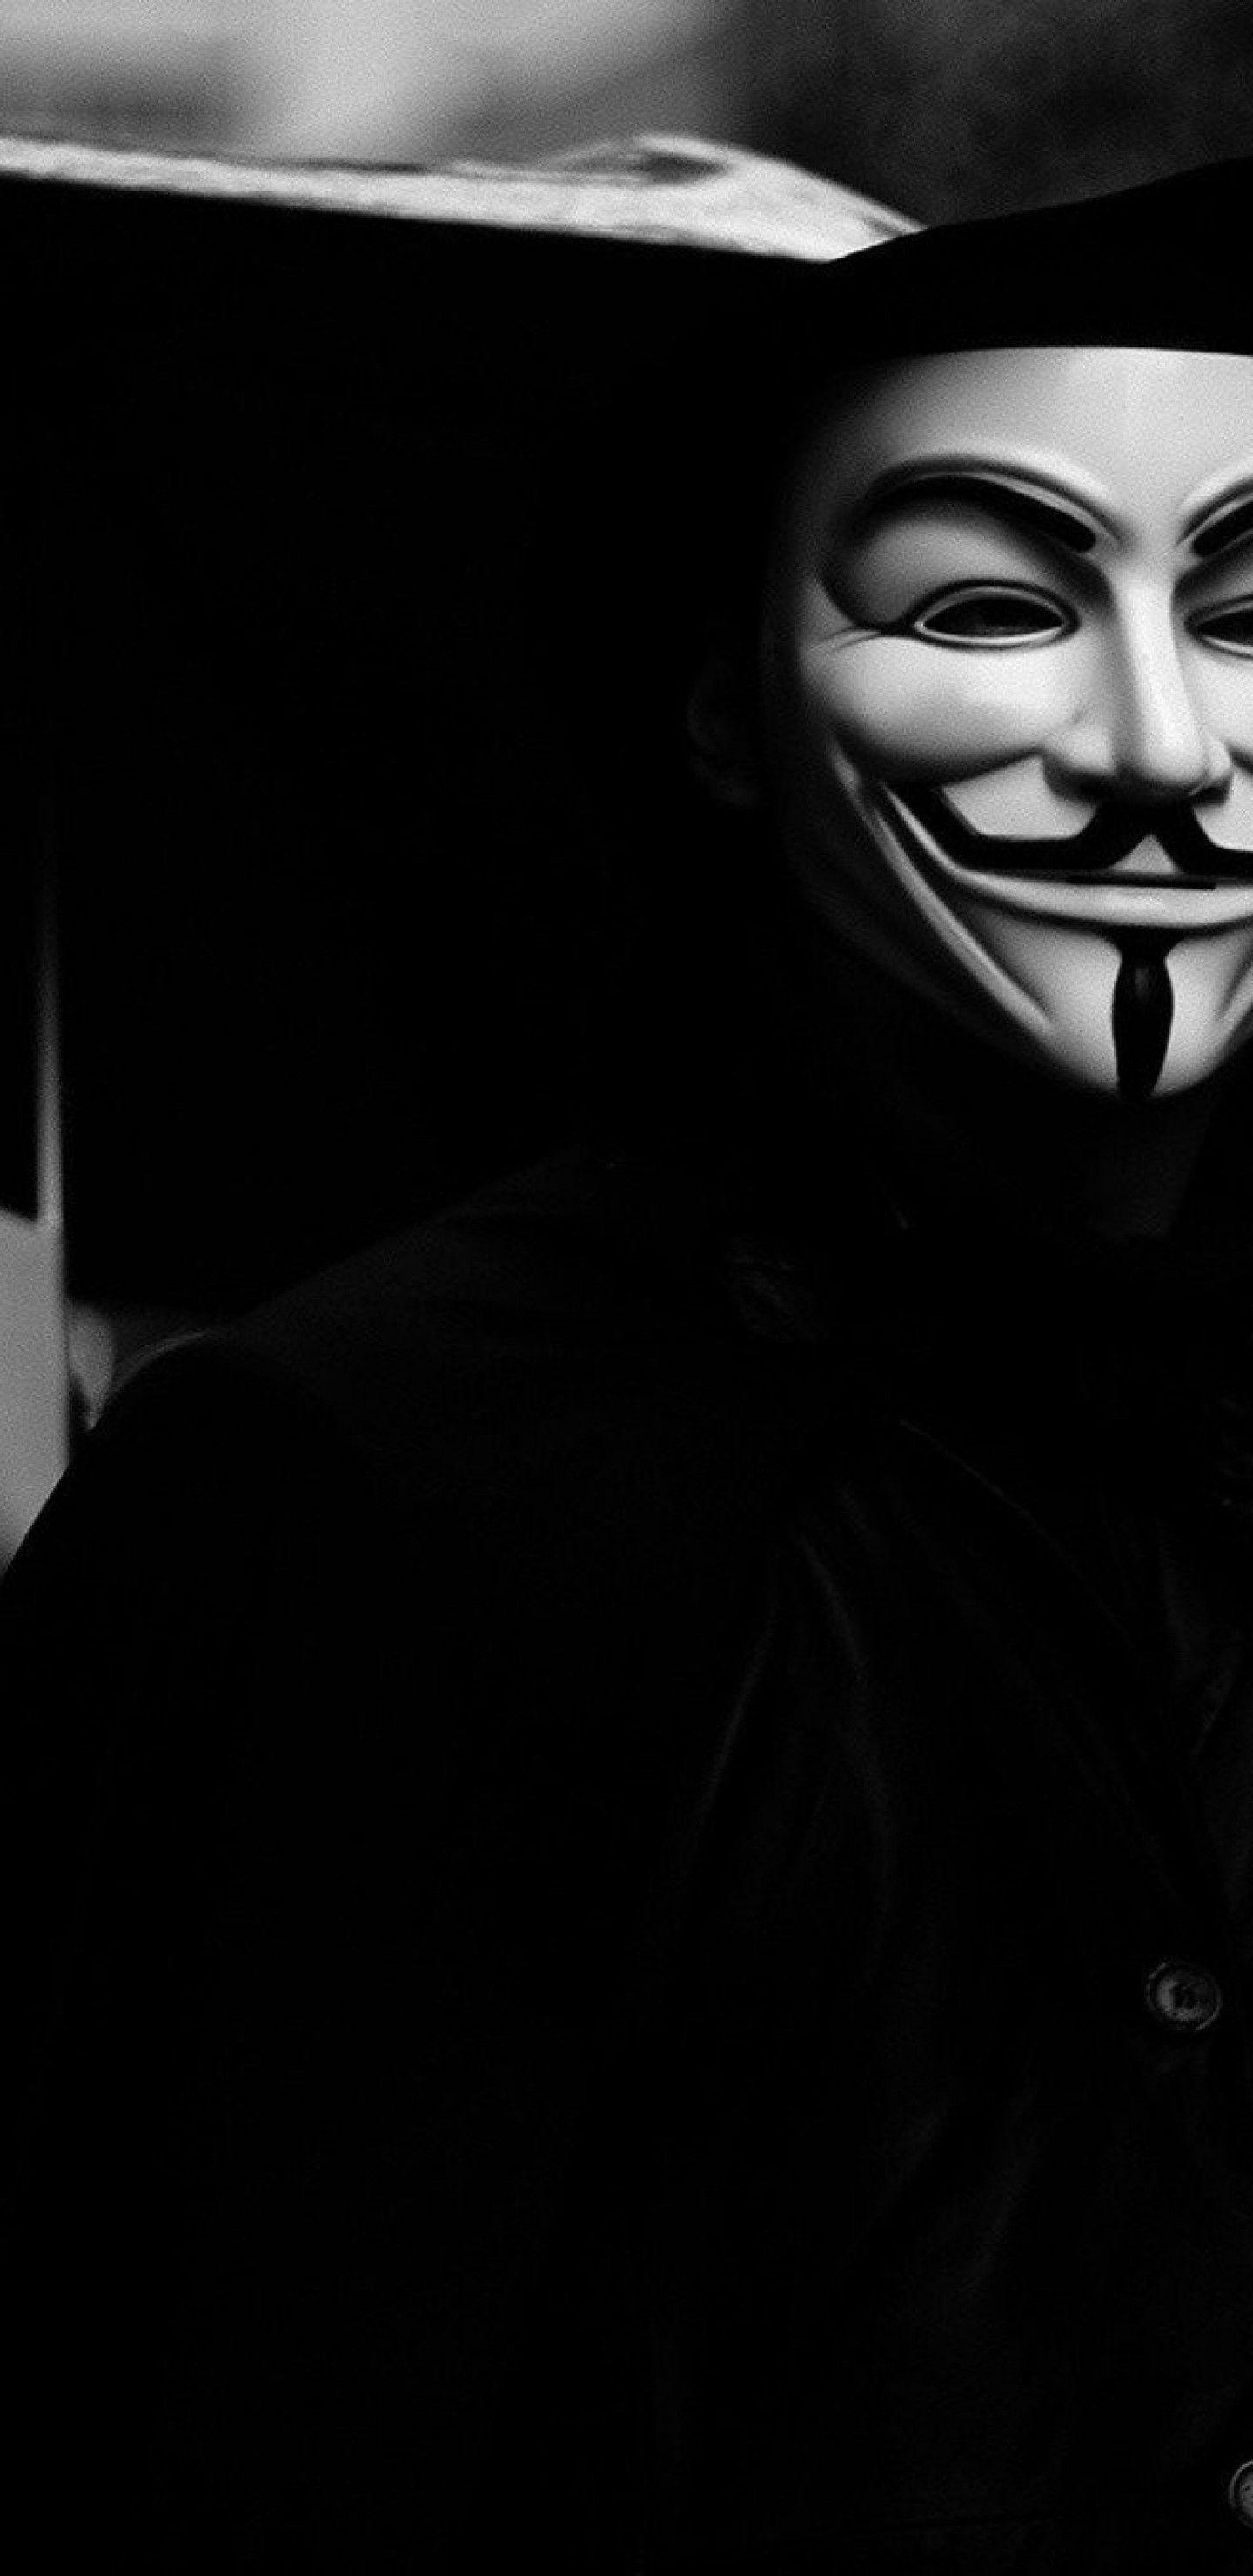 V For Vendetta Mask Wallpapers Wallpaper Cave